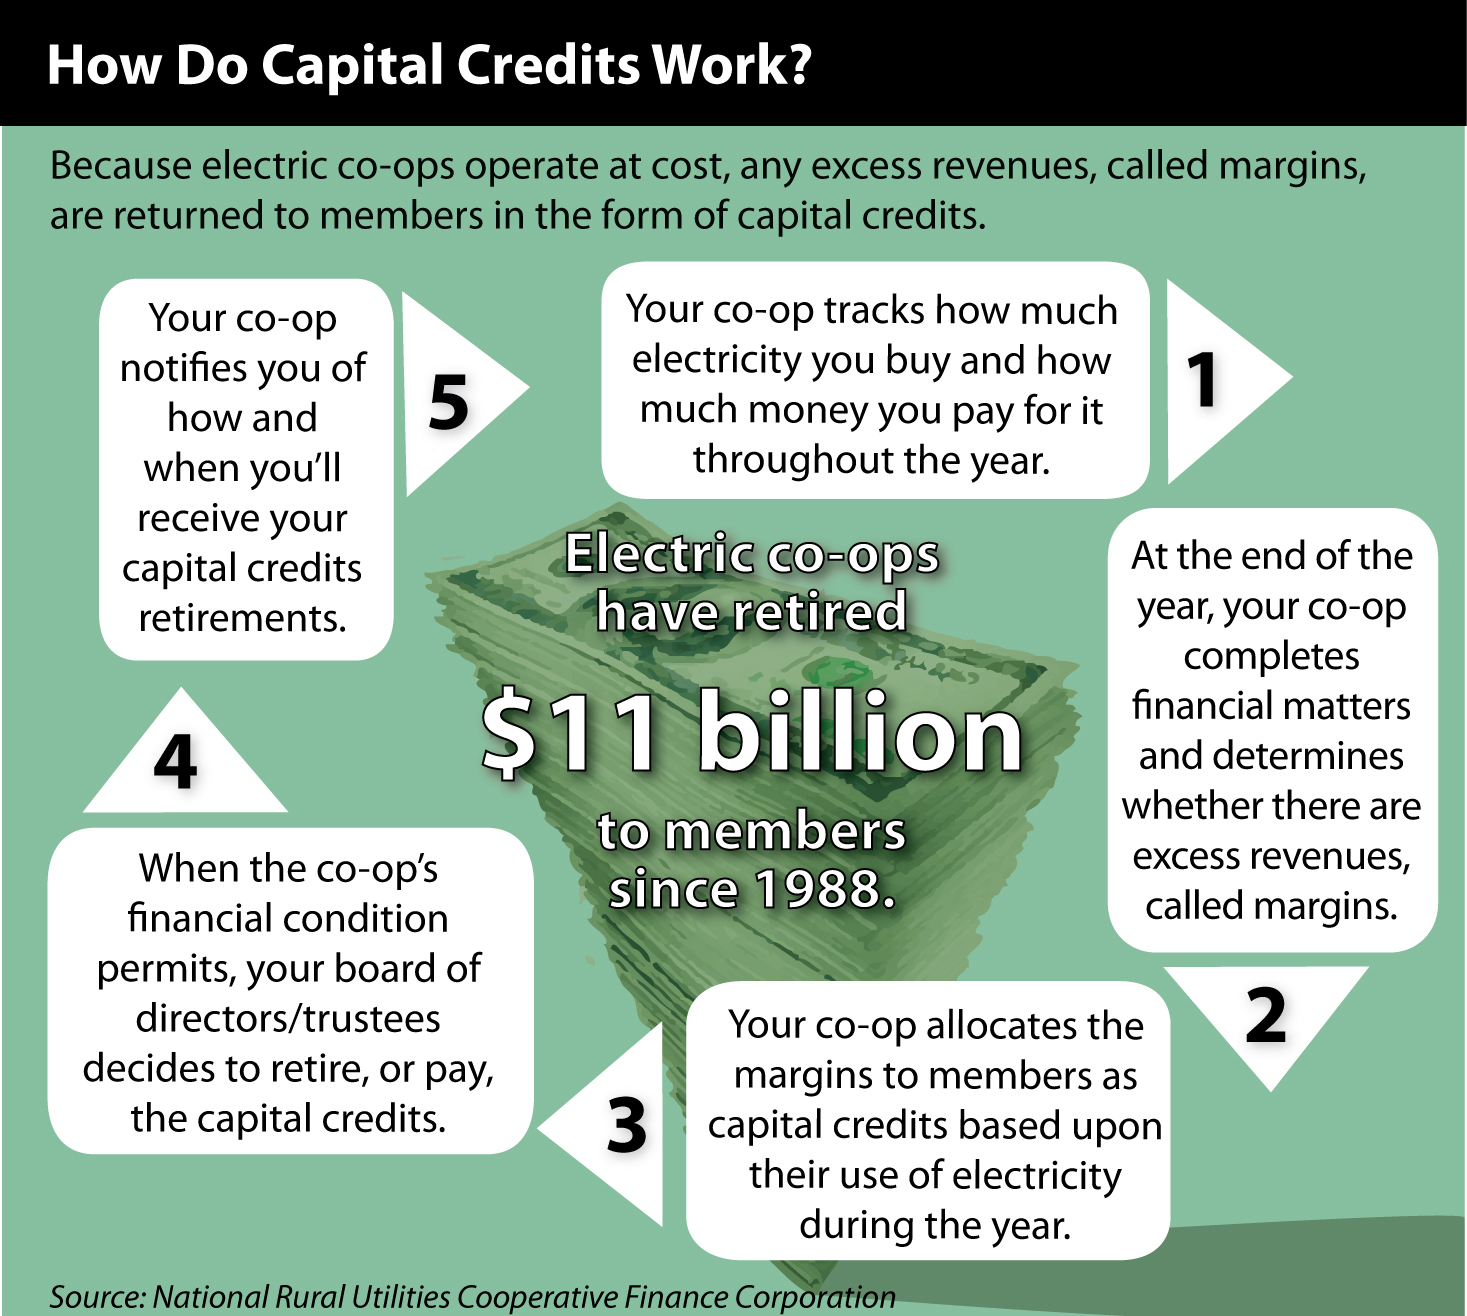 201310_GRAPHIC_Howdo capital credits workUPDATE.jpg